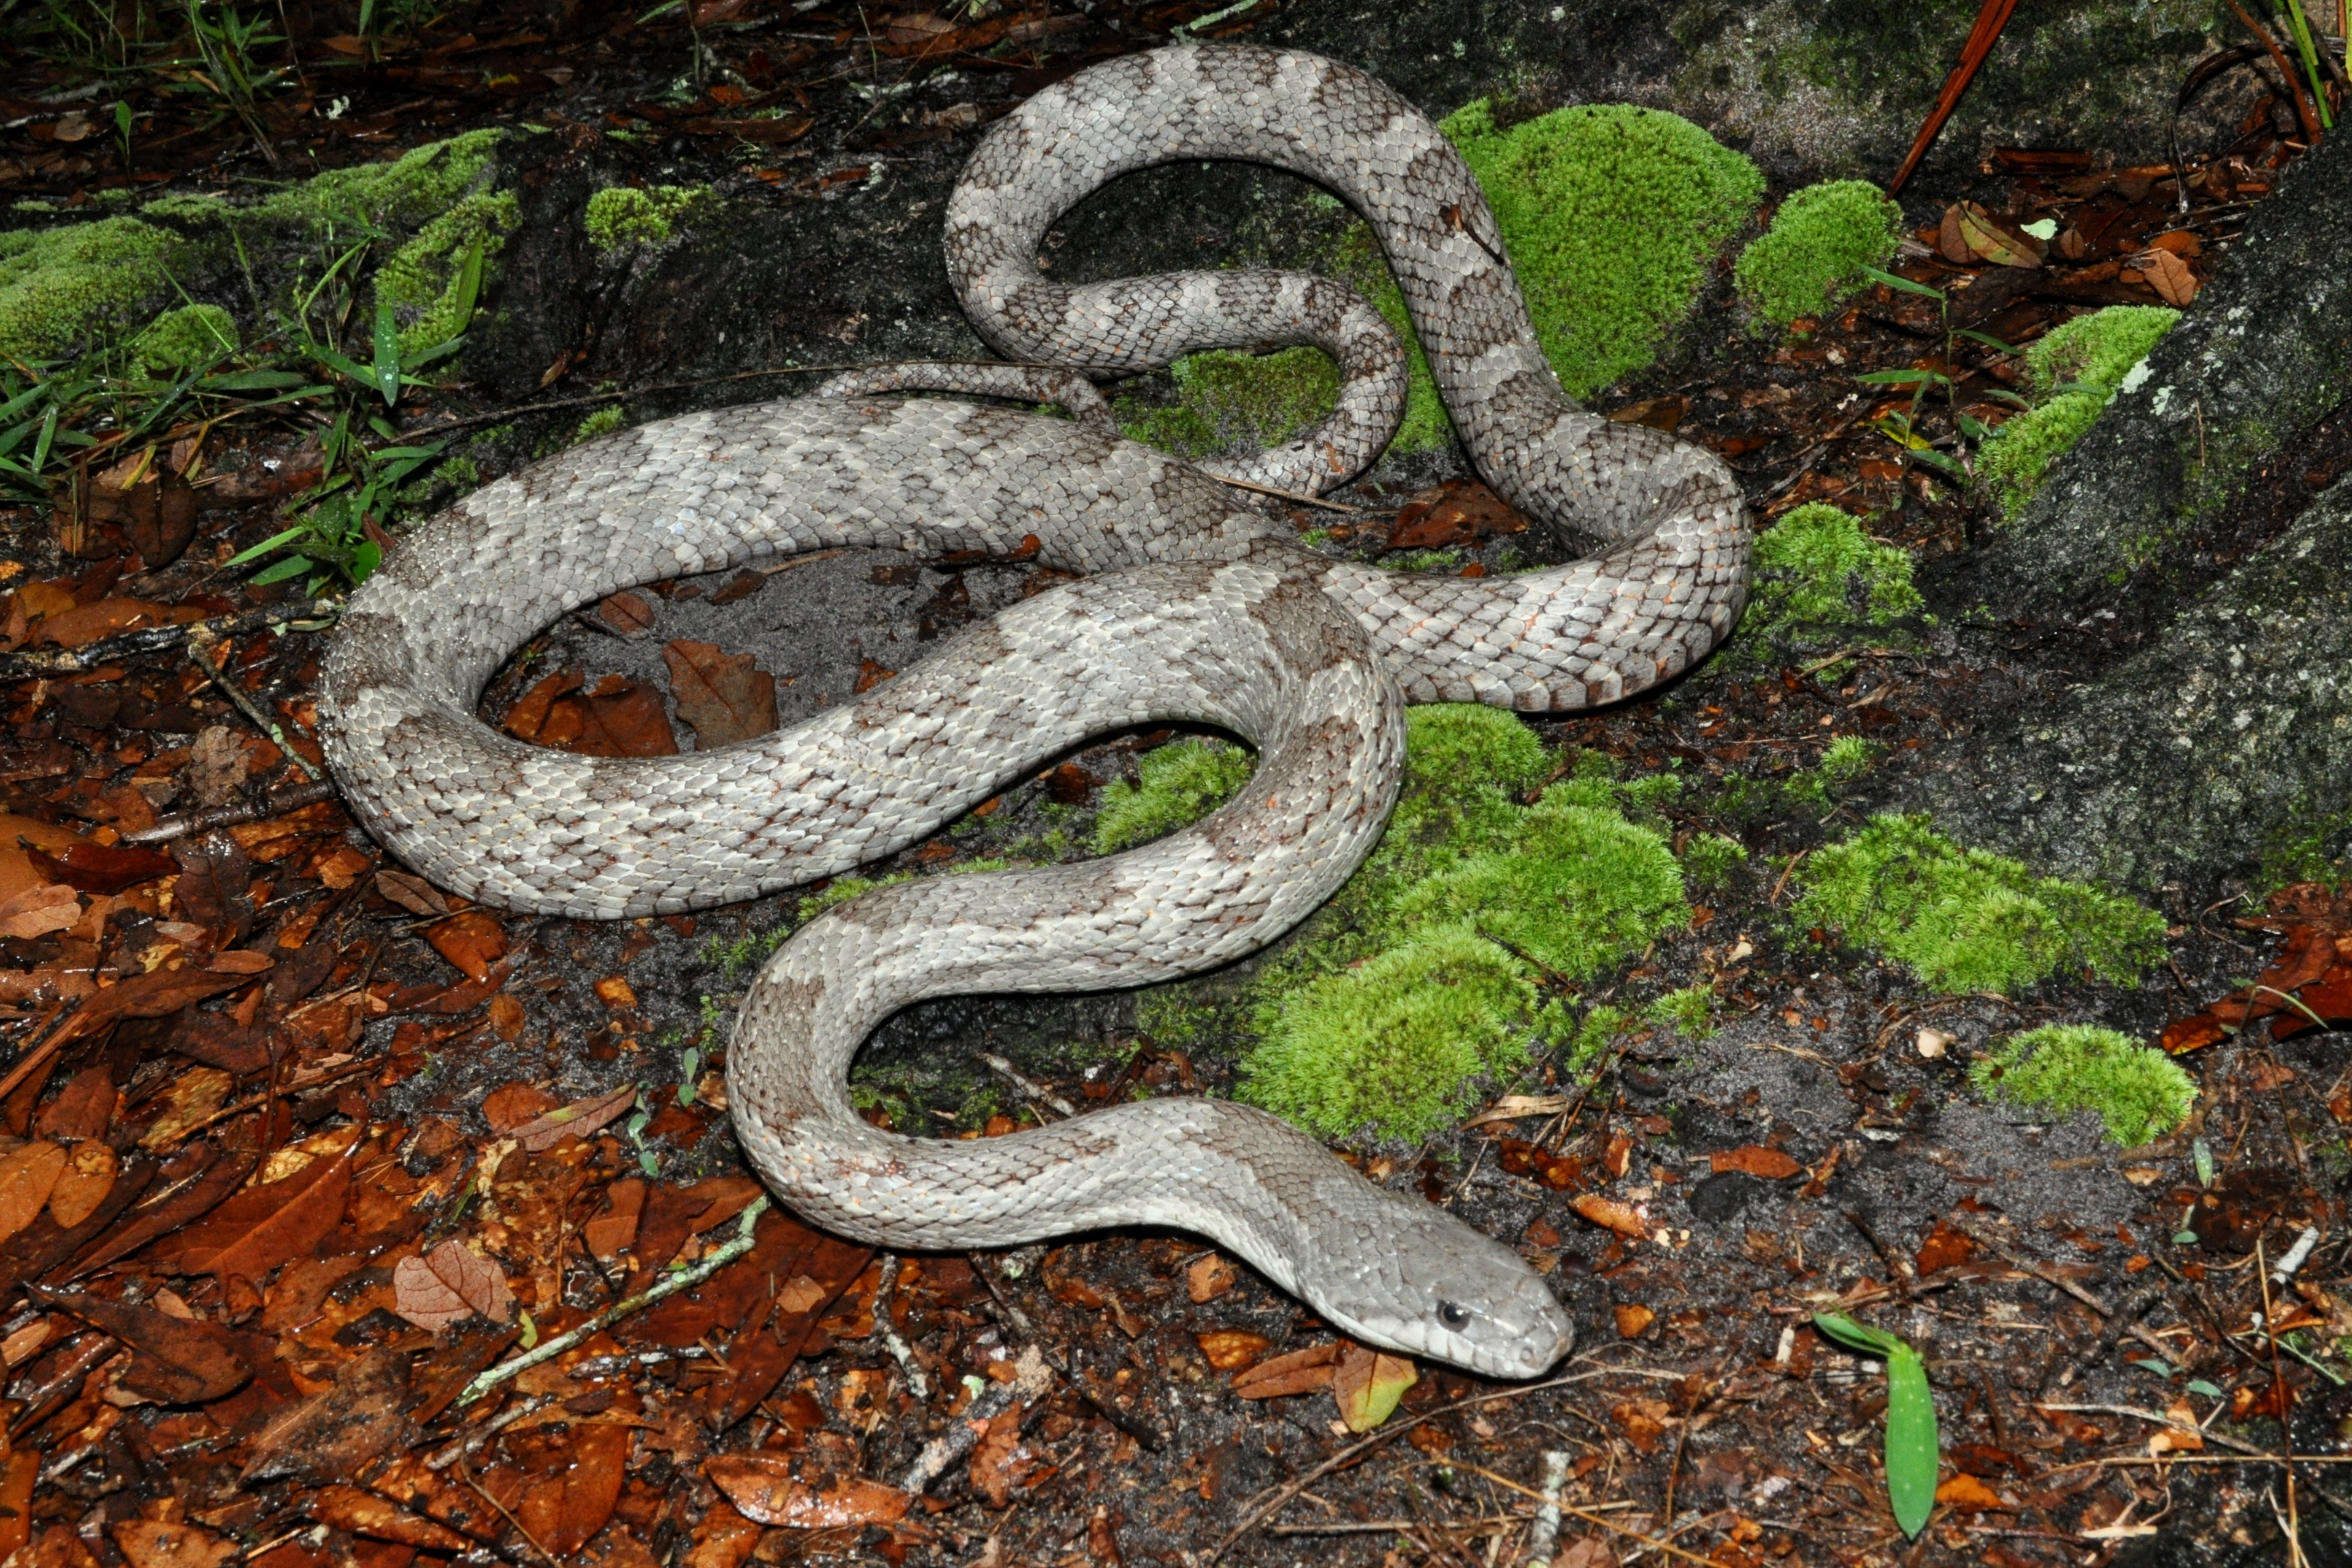 Florida Oak Snake http://www.sunshineserpents.com/Captive%20Breeding%20Projects/White%20Oak%20Gray%20Rat%20Snake.htm